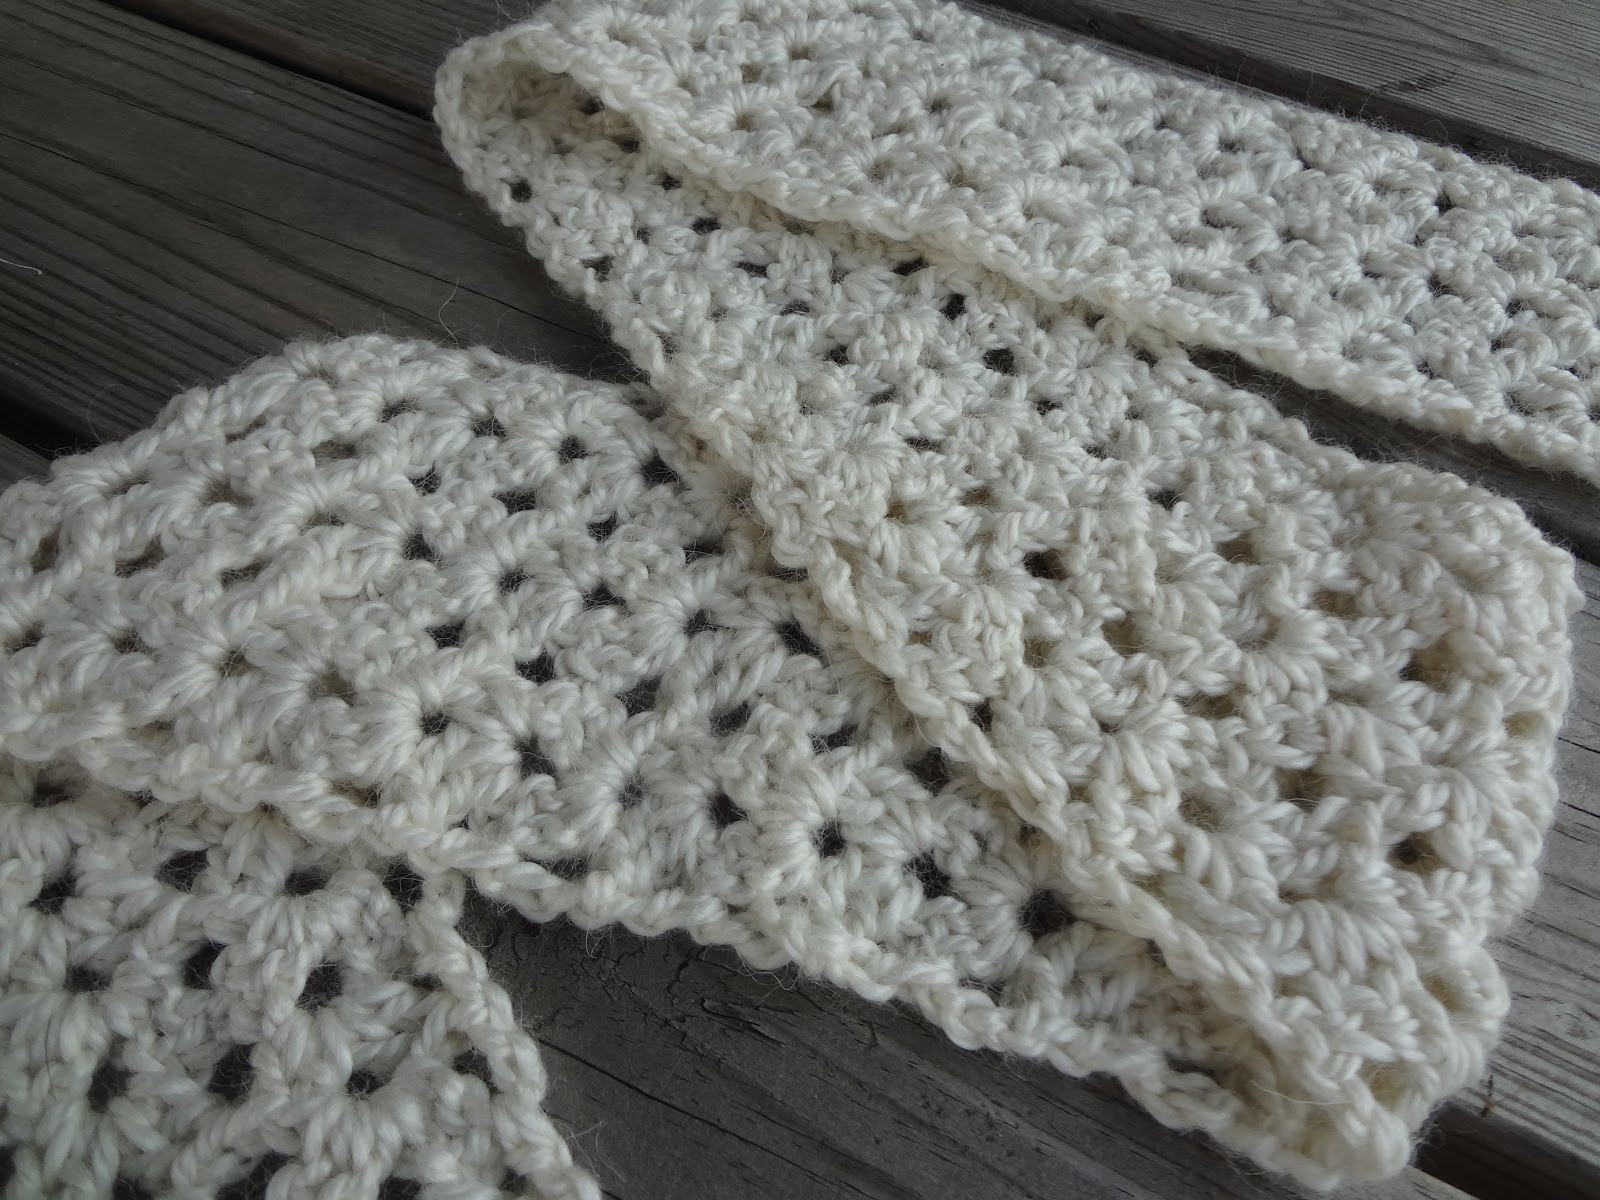 Free Easy Crochet Patterns Awesome Free Easy Crochet Scarf Patterns for Beginners Of Superb 49 Images Free Easy Crochet Patterns